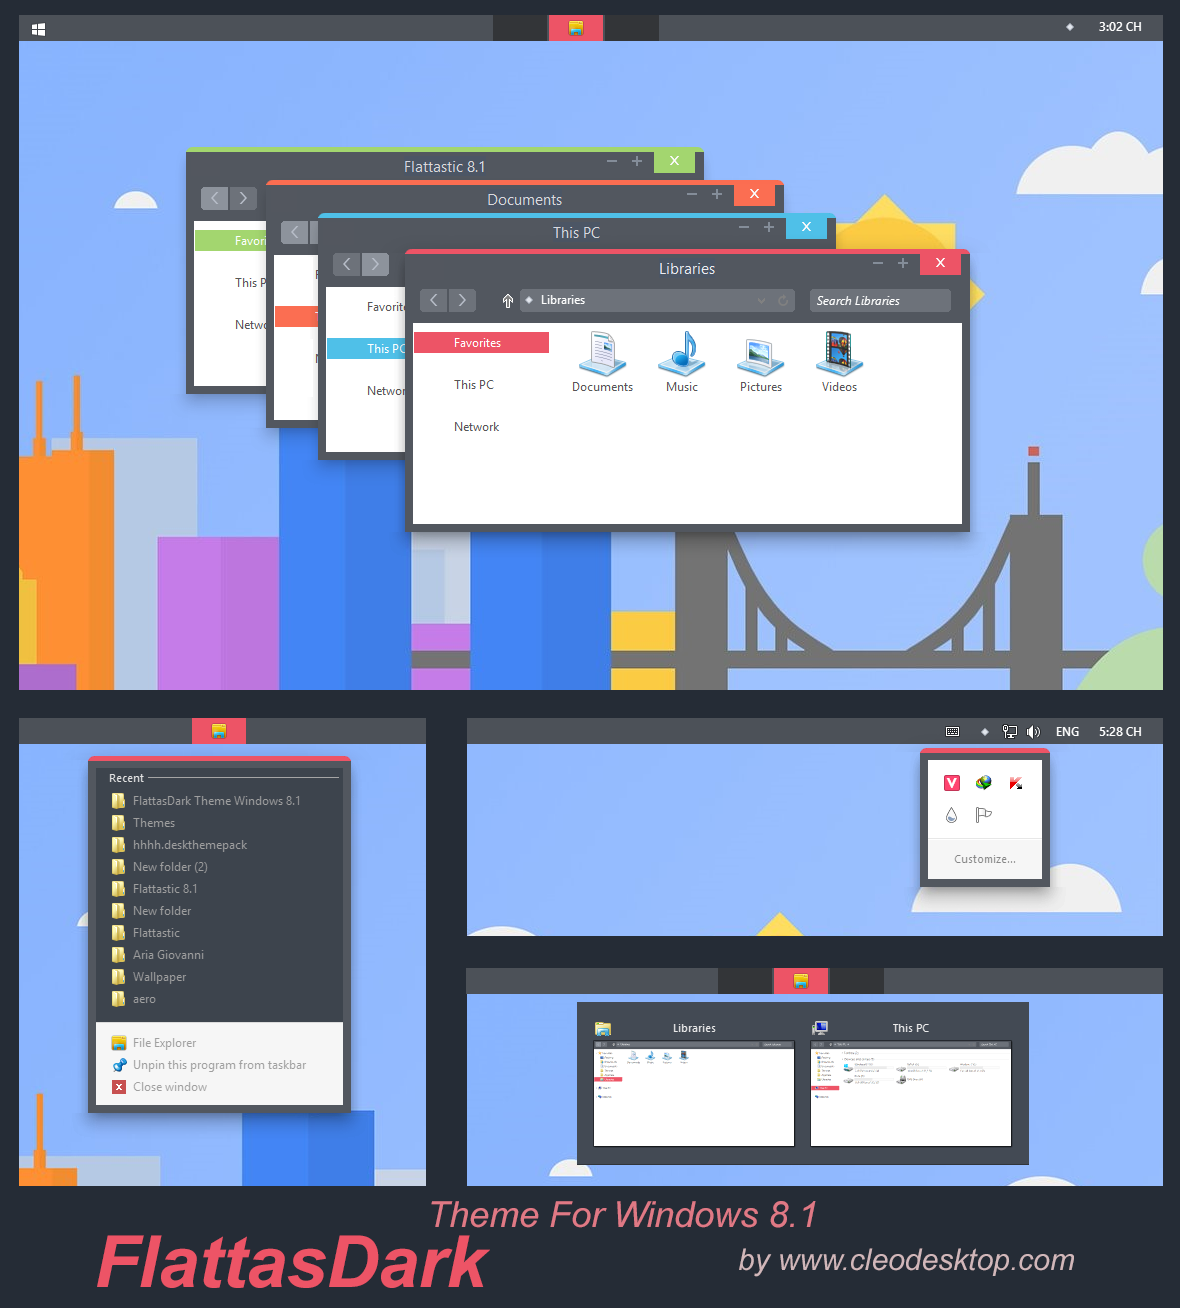 FlattasDark Theme Windows 8.1